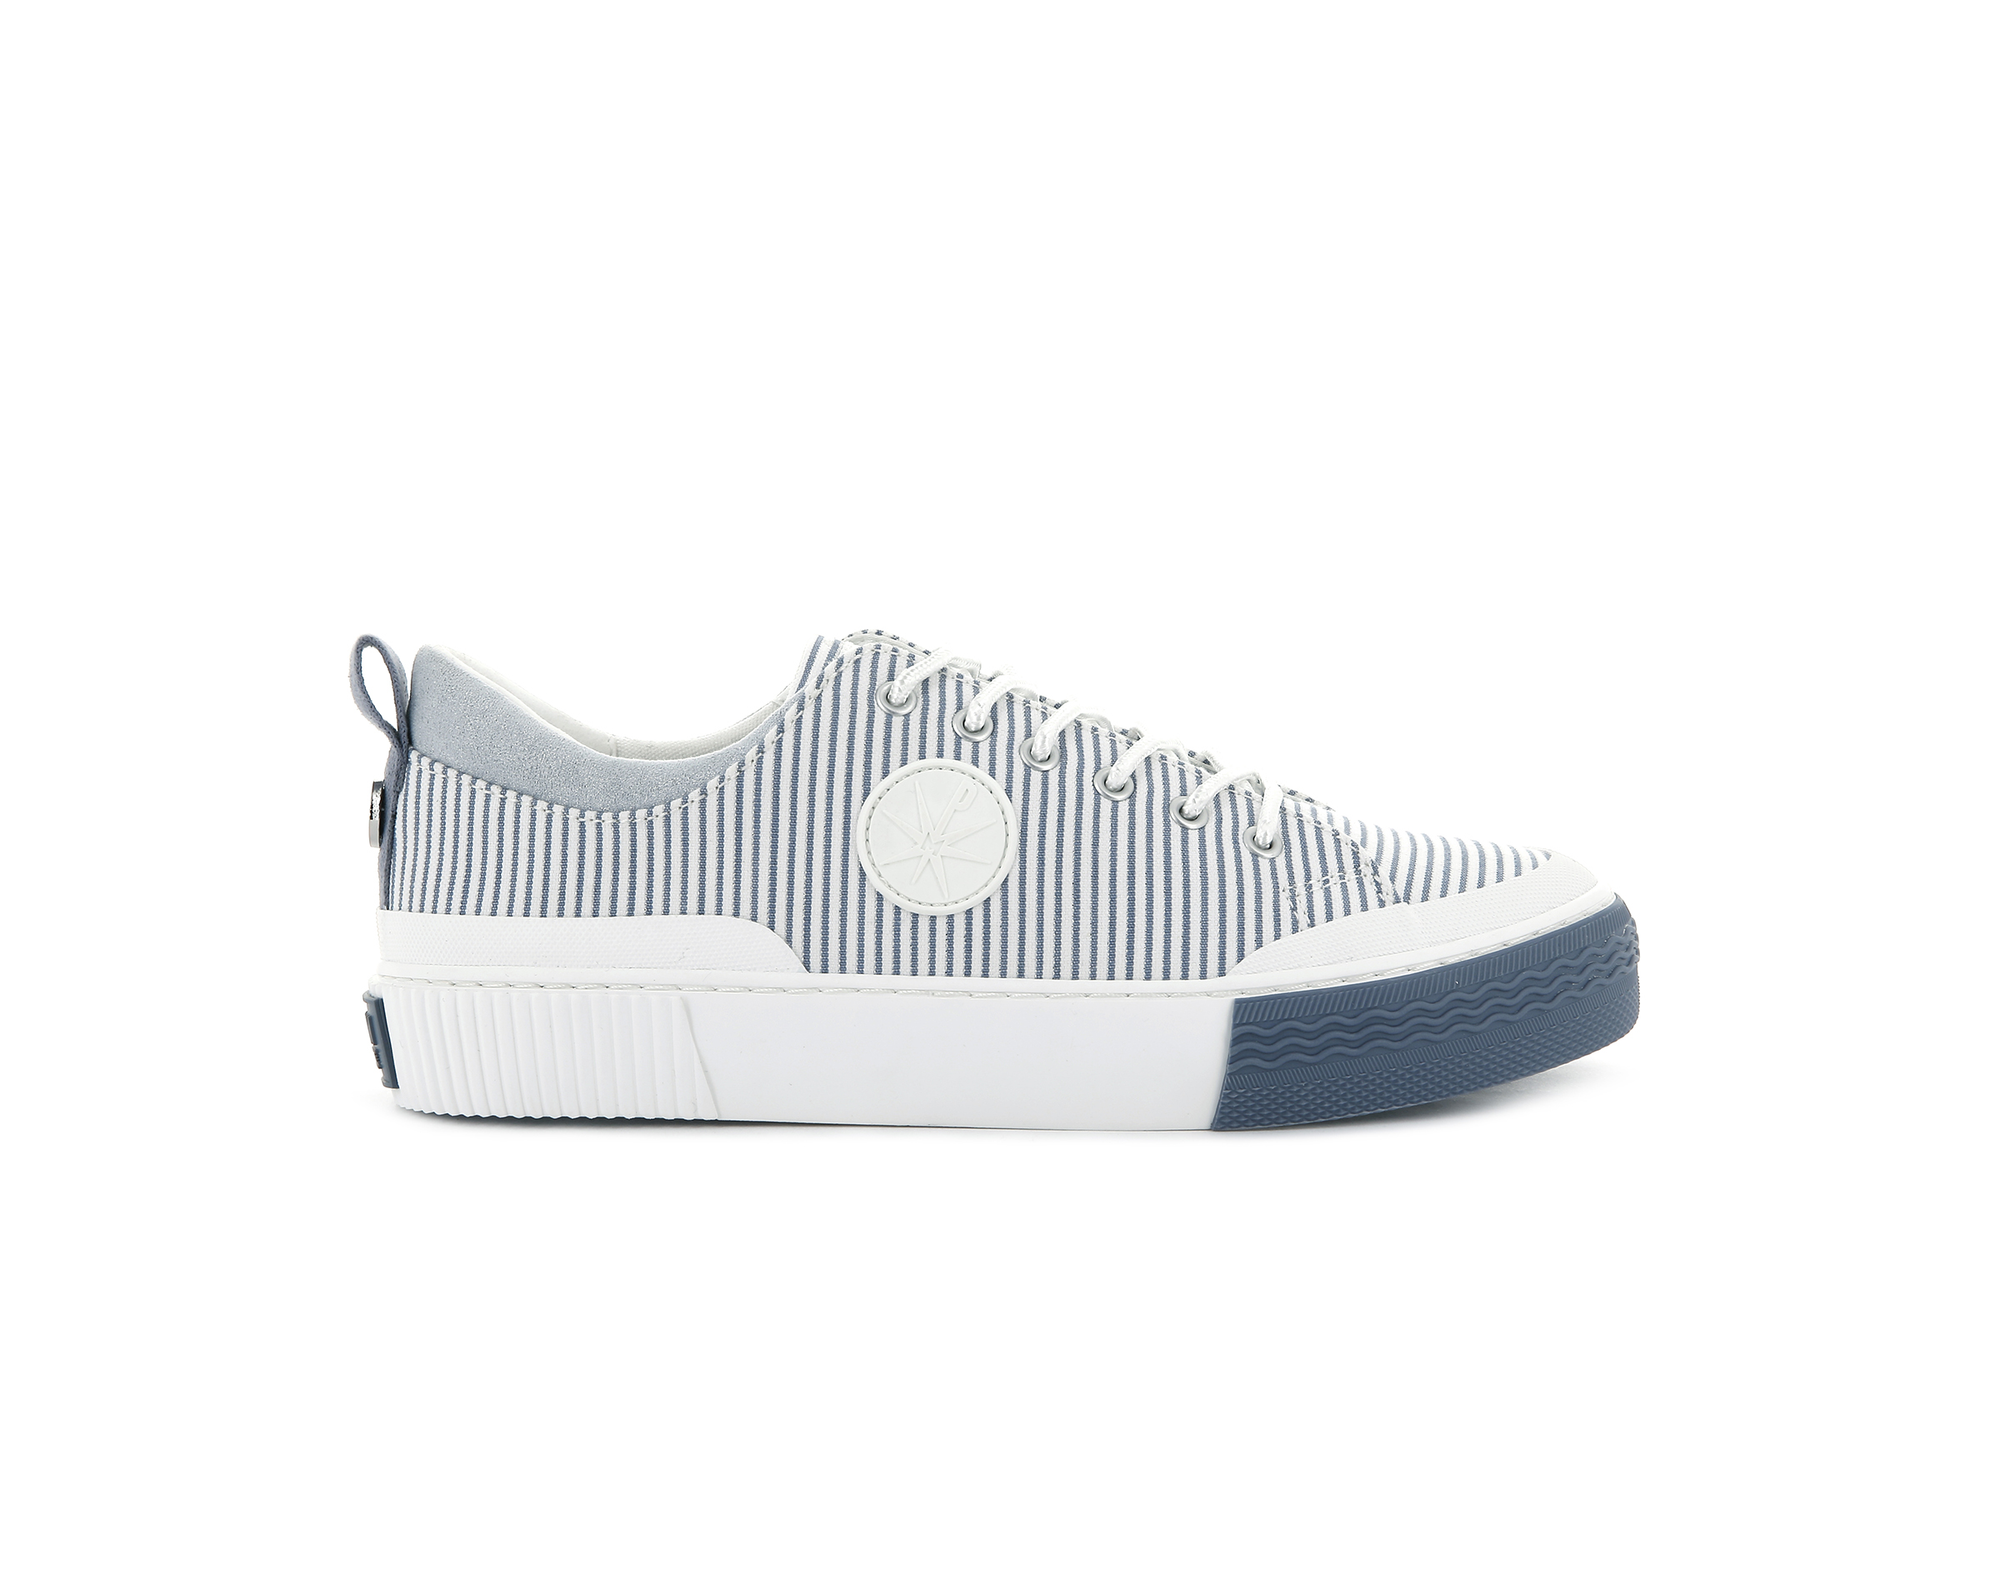 76556_119 | Basket Femme STUDIO 02 TXT | STRIPE BLUE WHITE